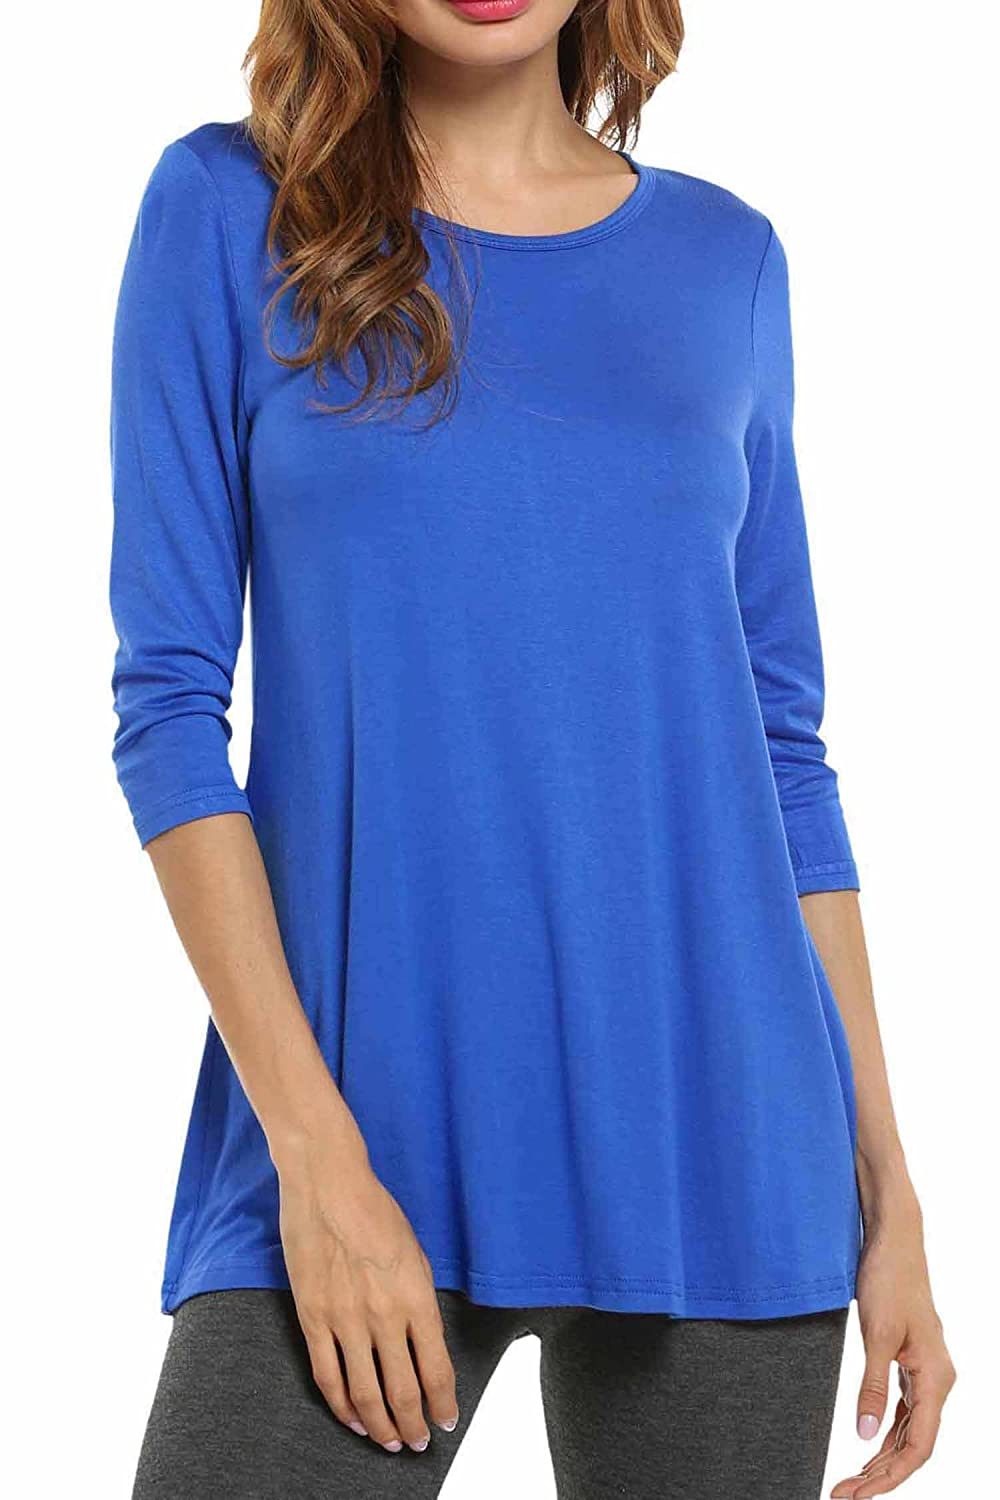 HOTOUCH Women Casual Tees T-Shirt Flowy Soft Comfy Loose Fit Plus Size Tunic Tops AMH005000